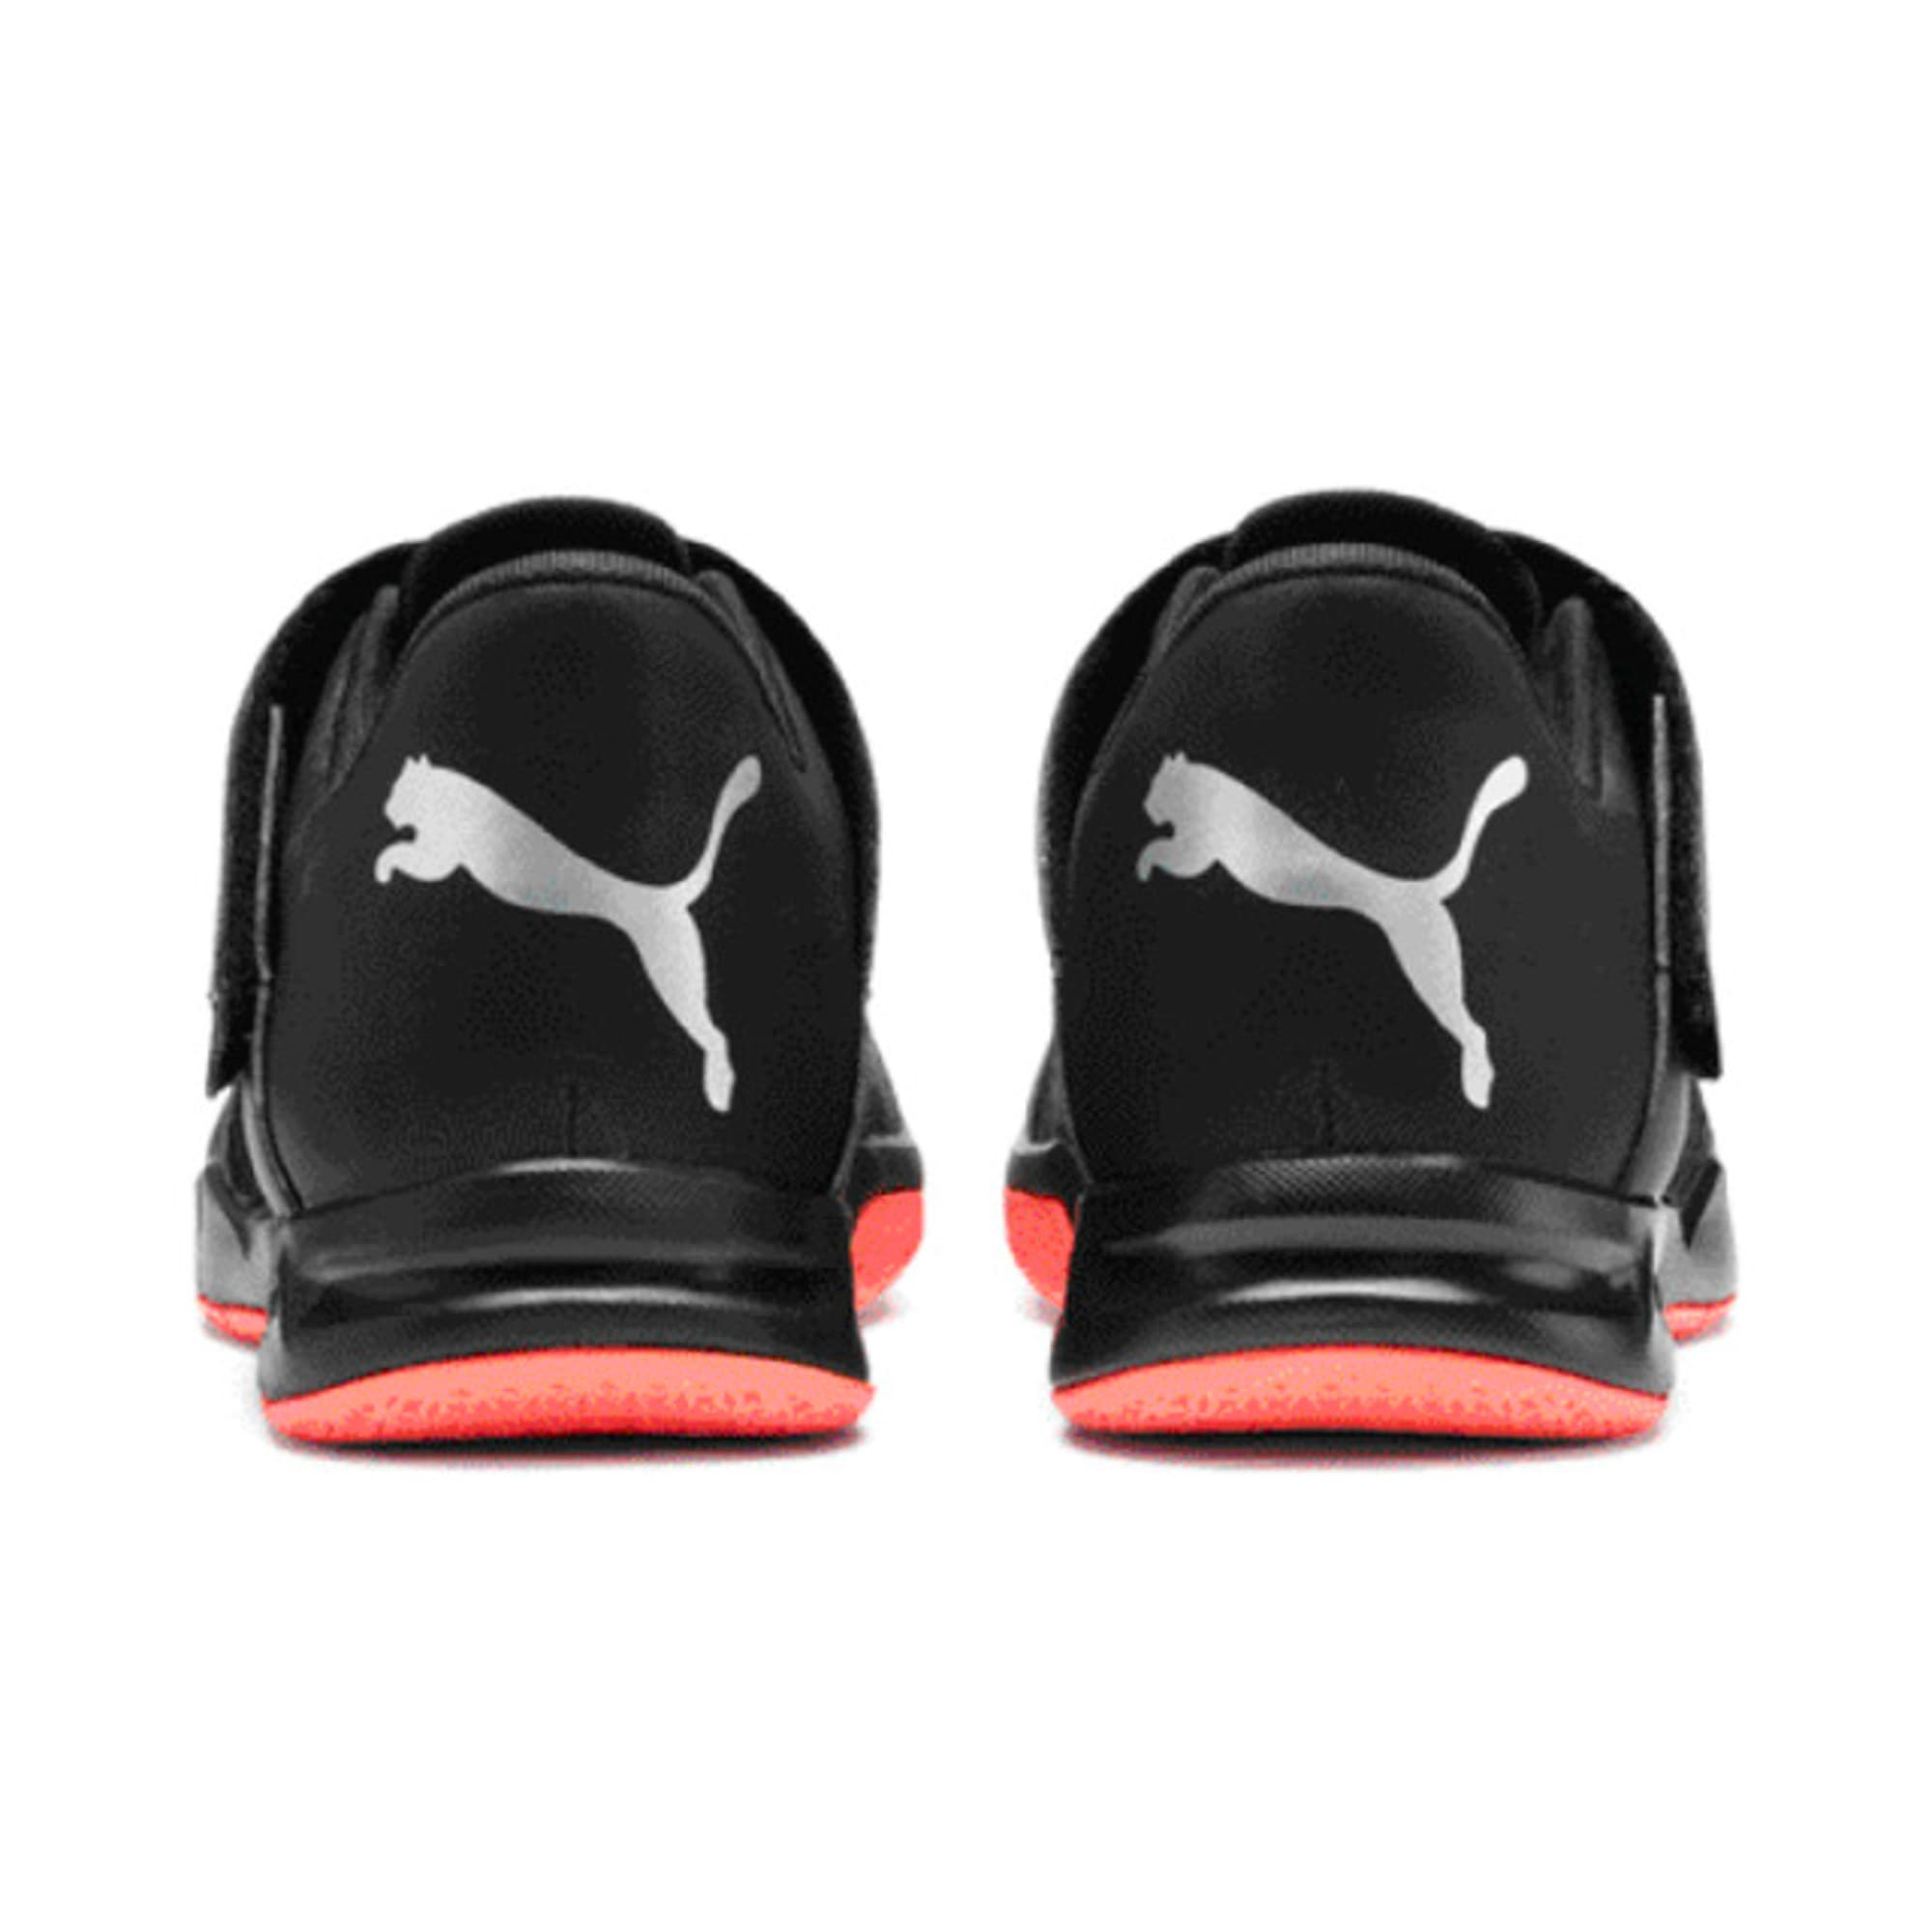 Thumbnail 6 of Rise XT 4 Men's Indoor Sports Trainers, Puma Black-Silver-Nrgy Red, medium-IND